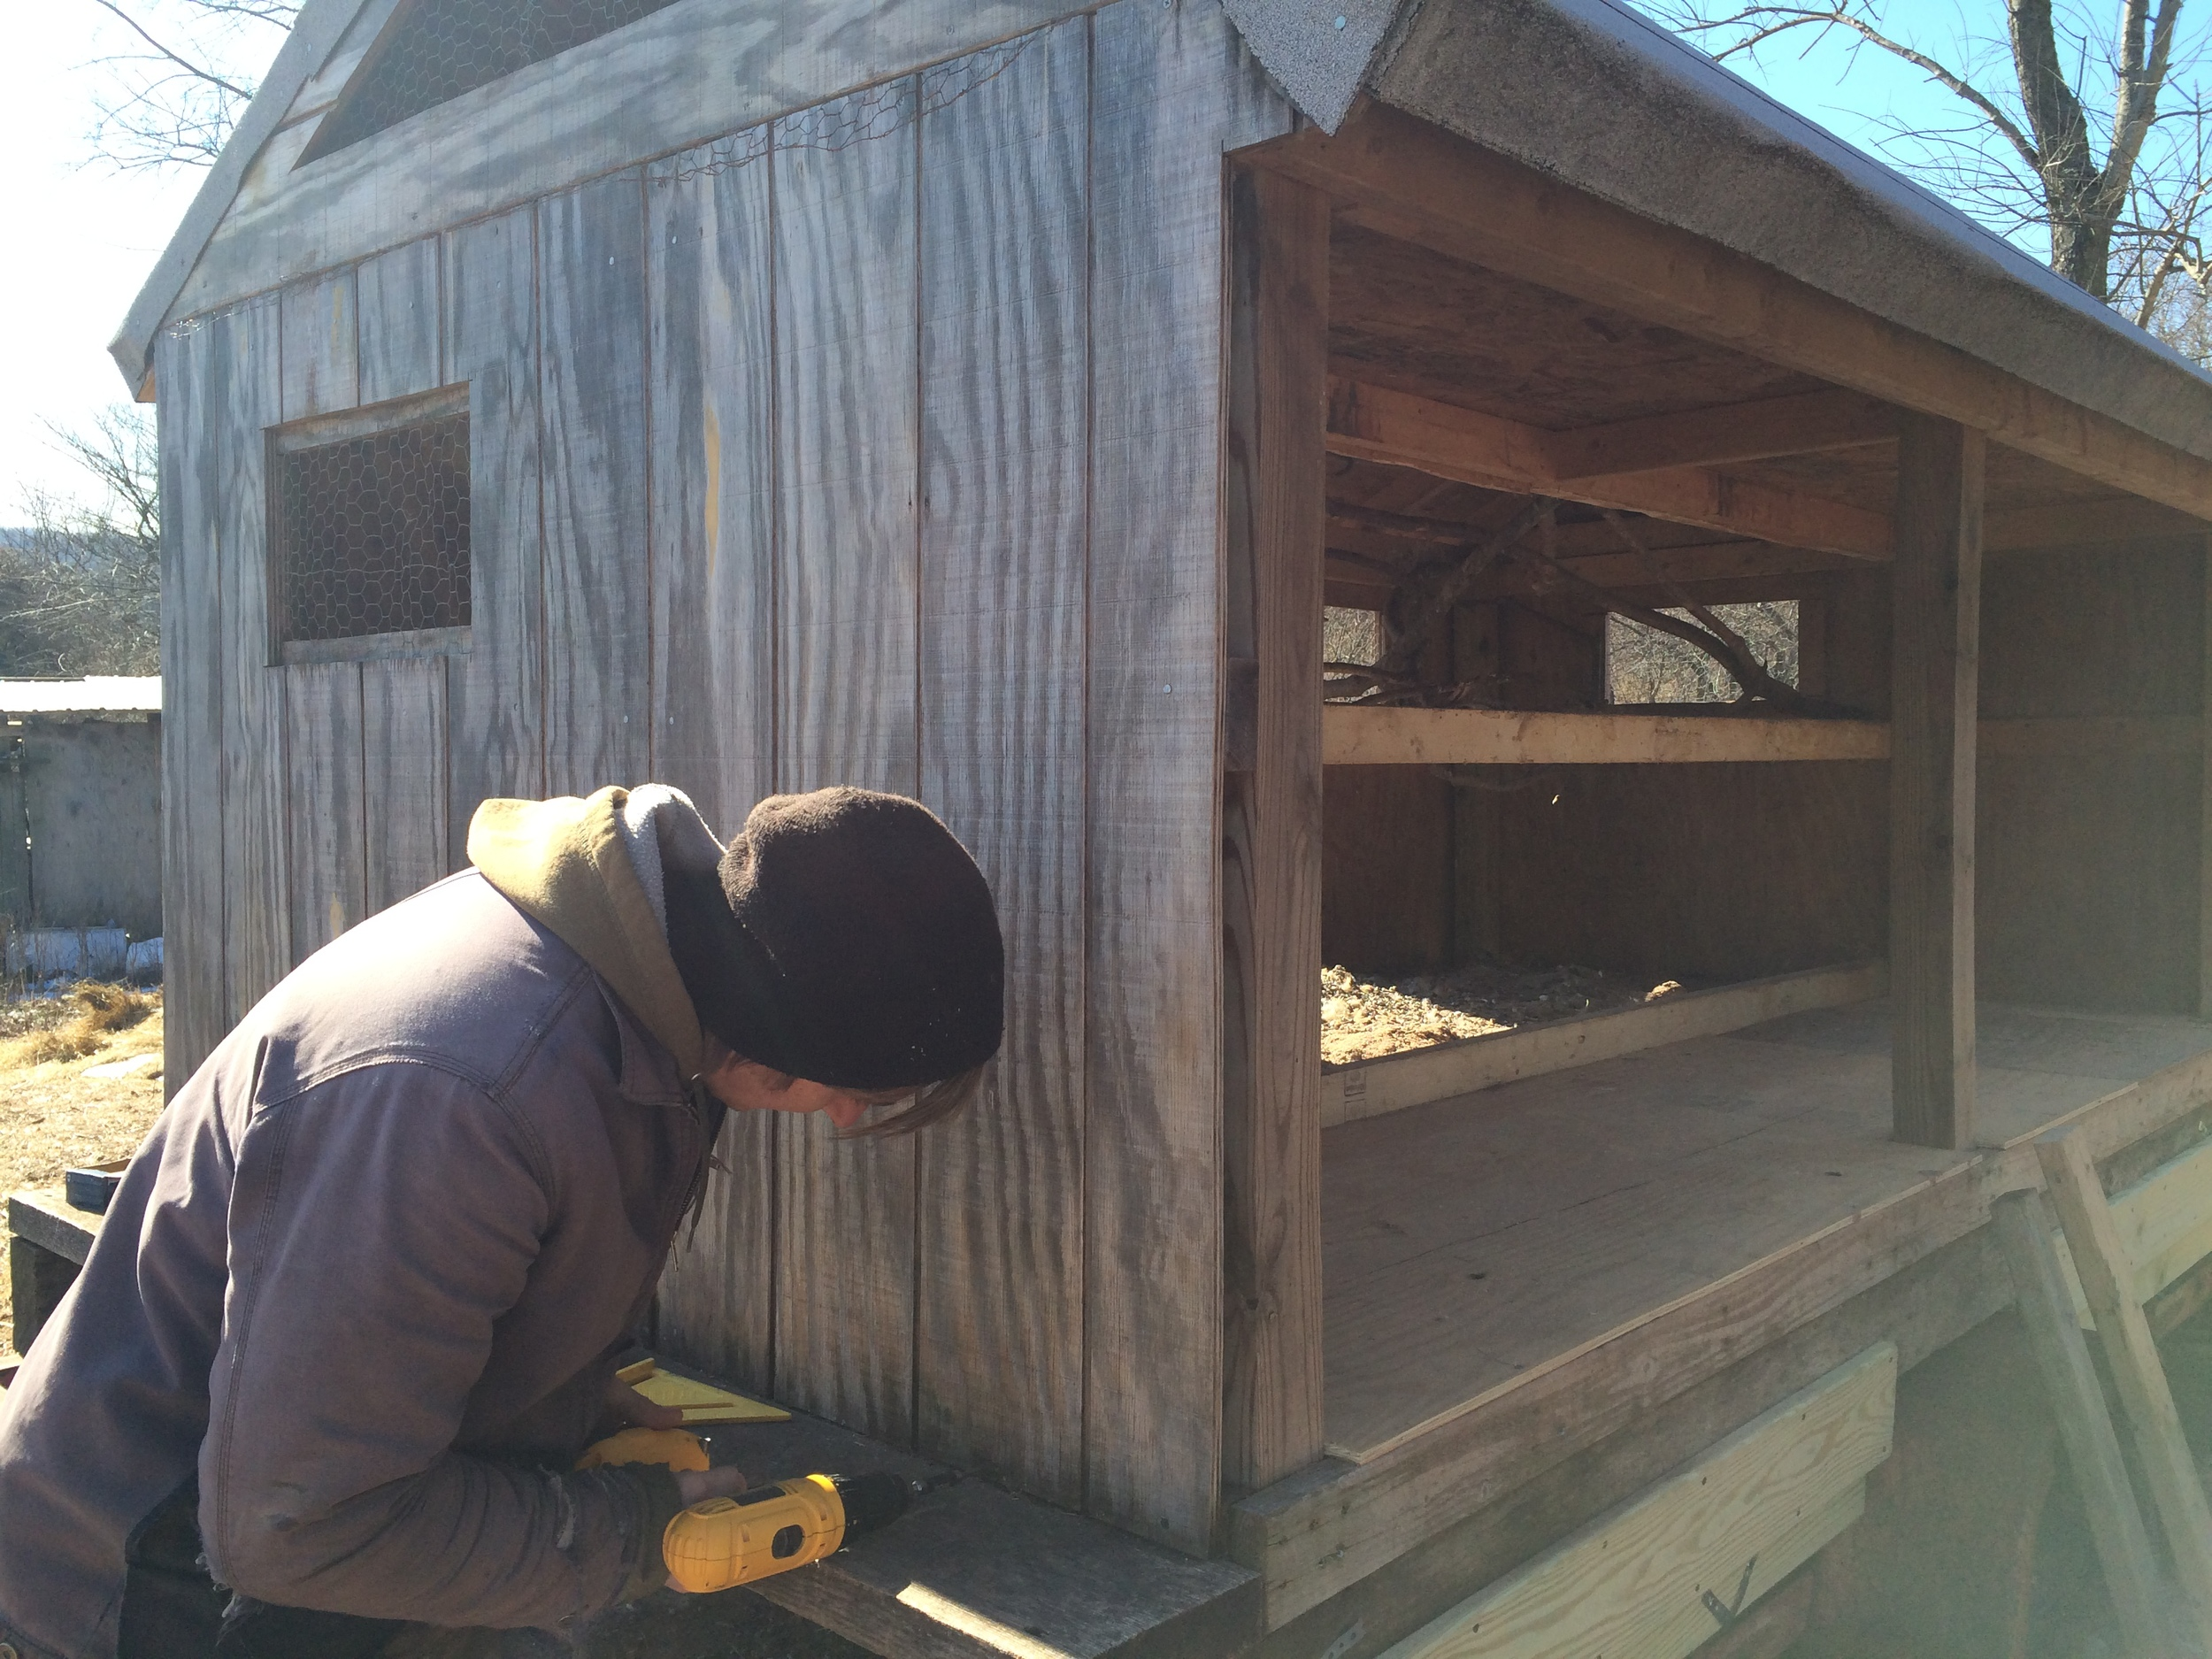 Chris, putting in some fresh screws to ensure the new(ish)hen house is nice and sturdy